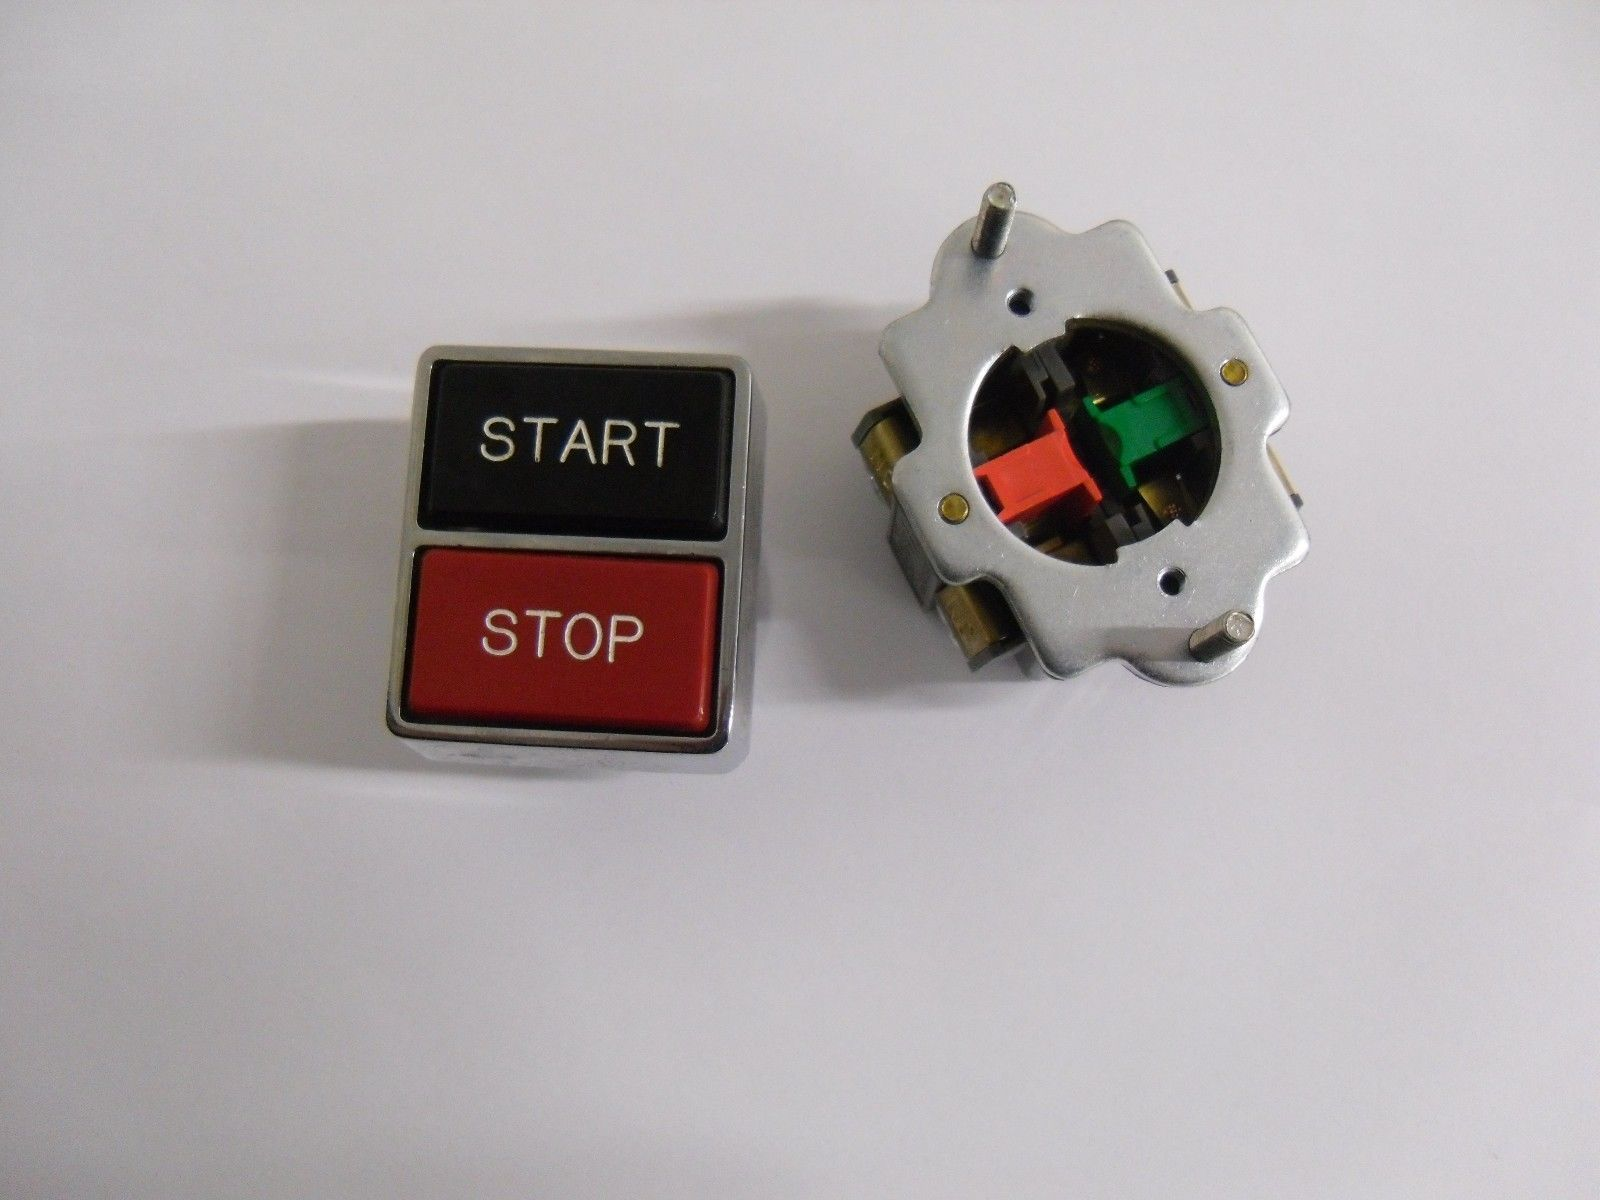 DUCT-O-WIRE Push Button Insert PB-STA, Start and 13 similar items